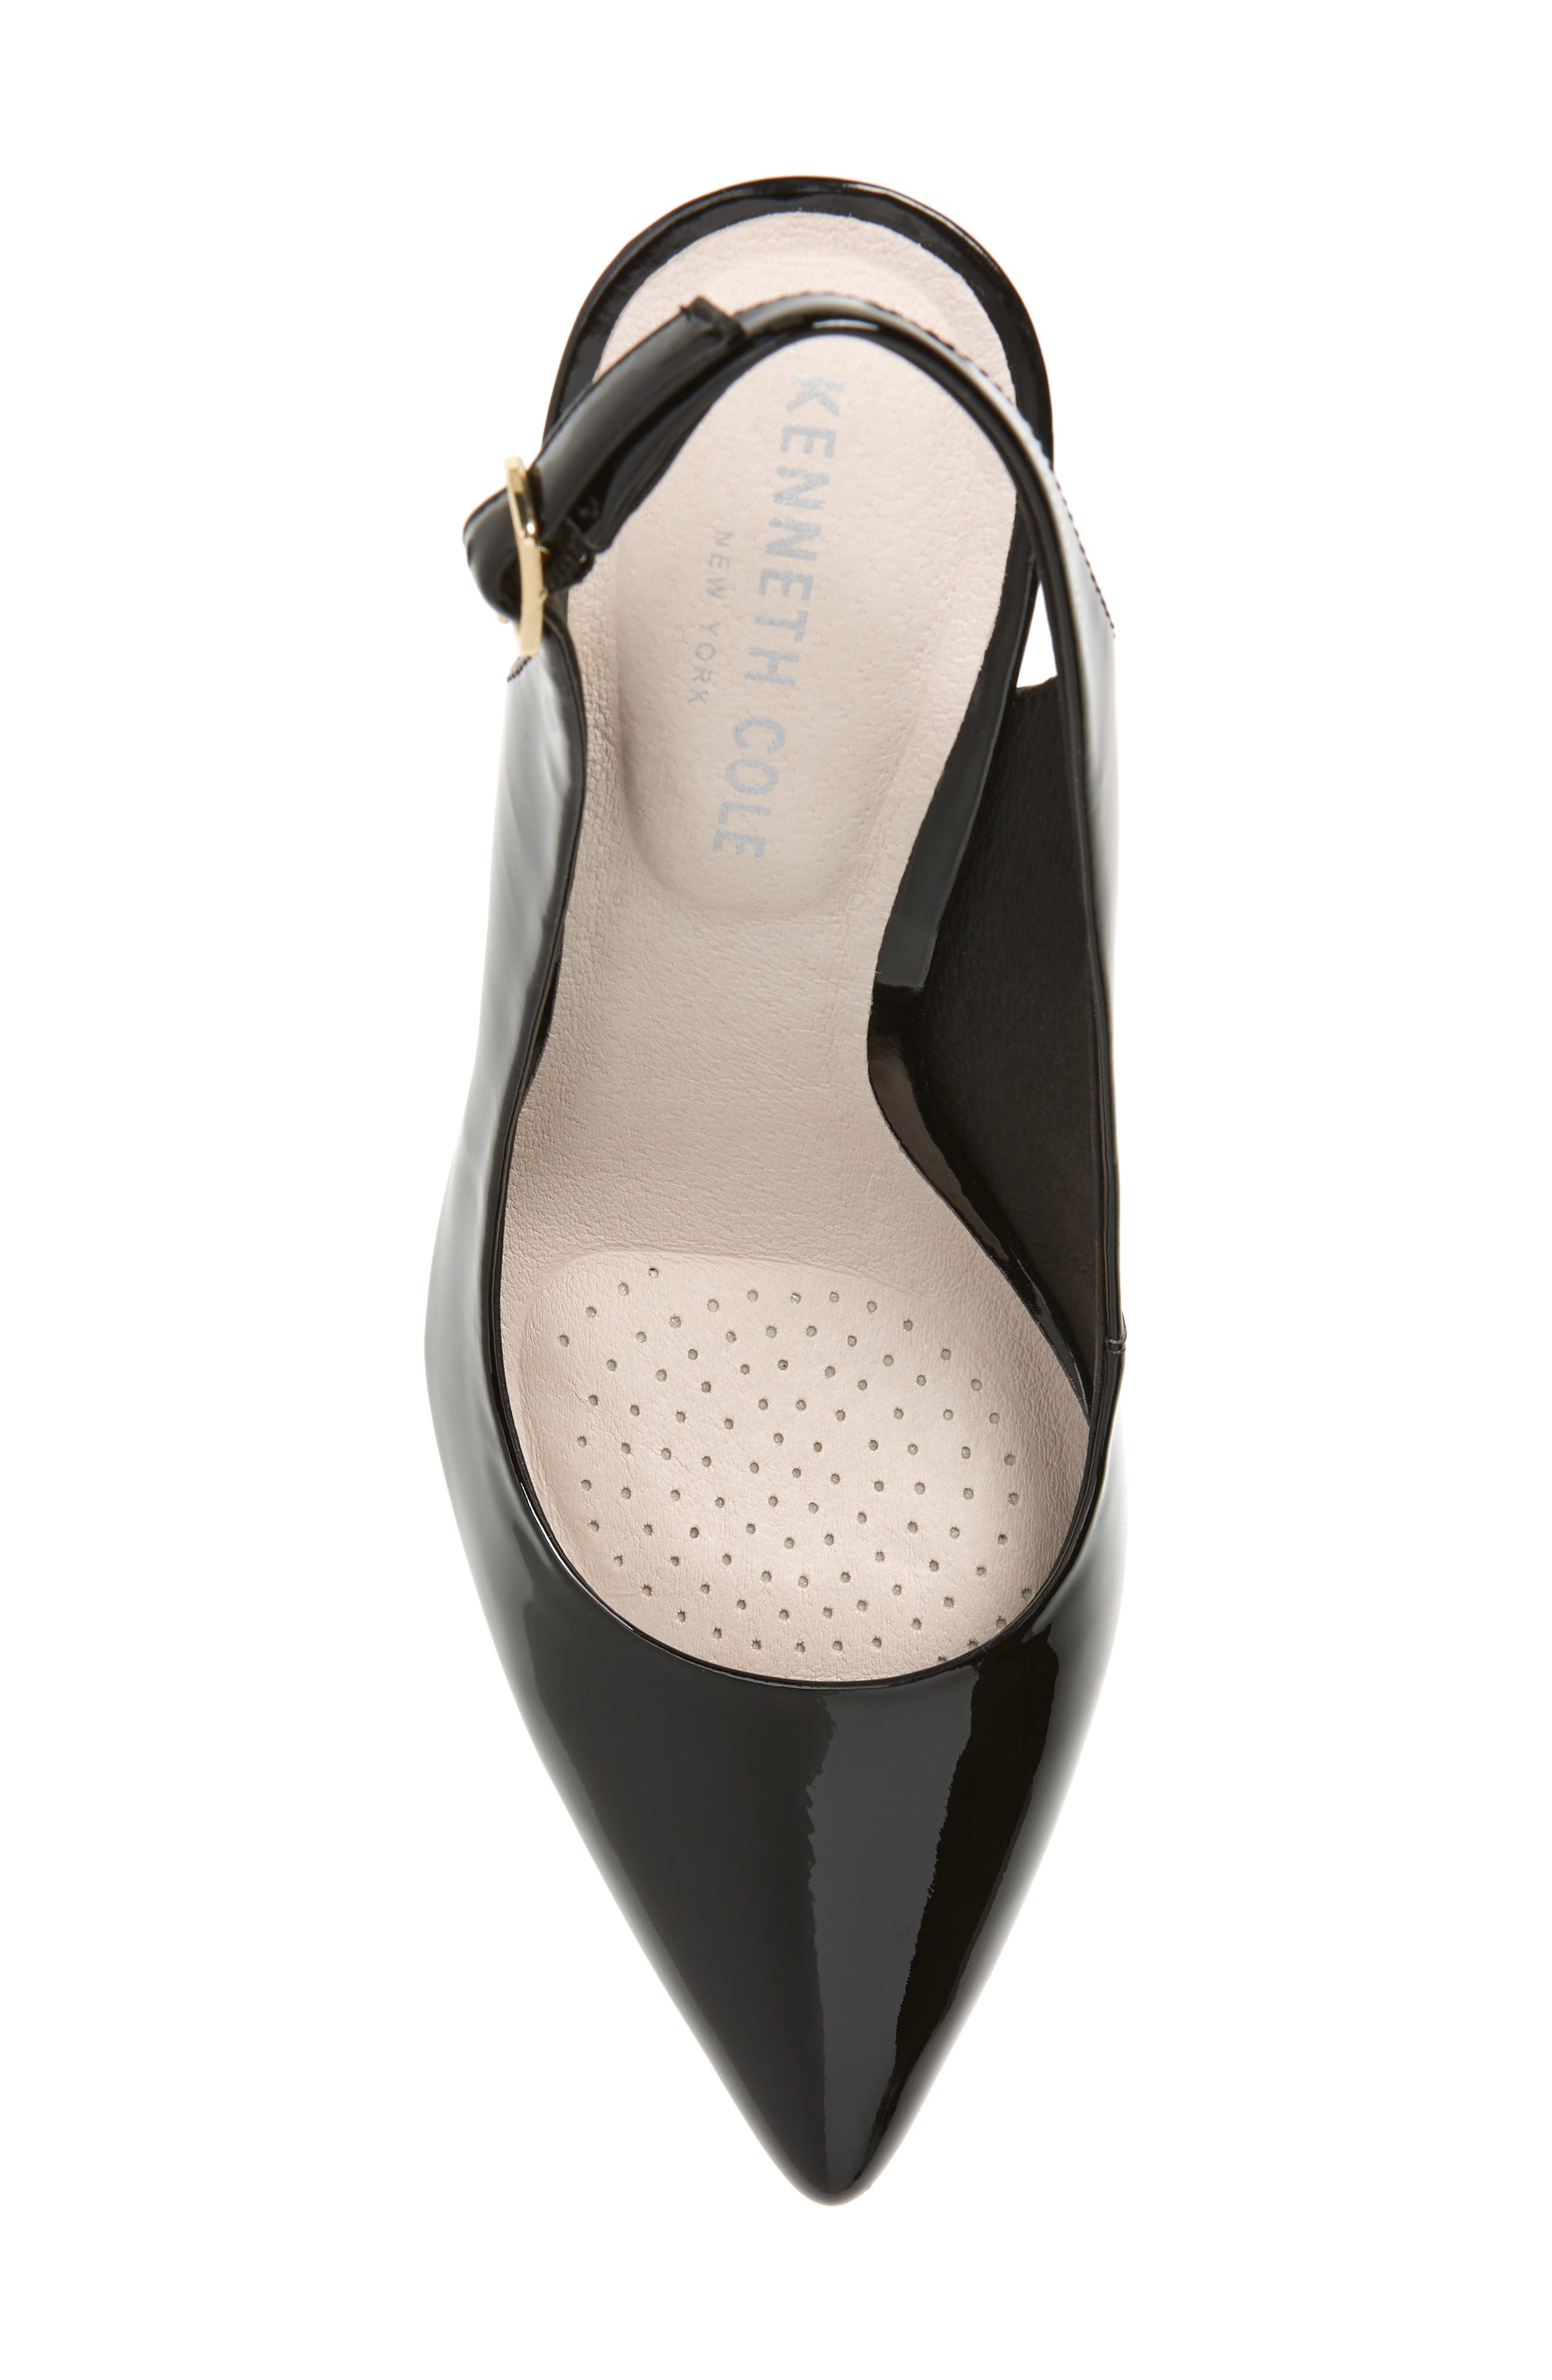 KENNETH COLE NEW YORK,                             Riley 85 Slingback Pump,                             Alternate thumbnail 5, color,                             BLACK PATENT LEATHER